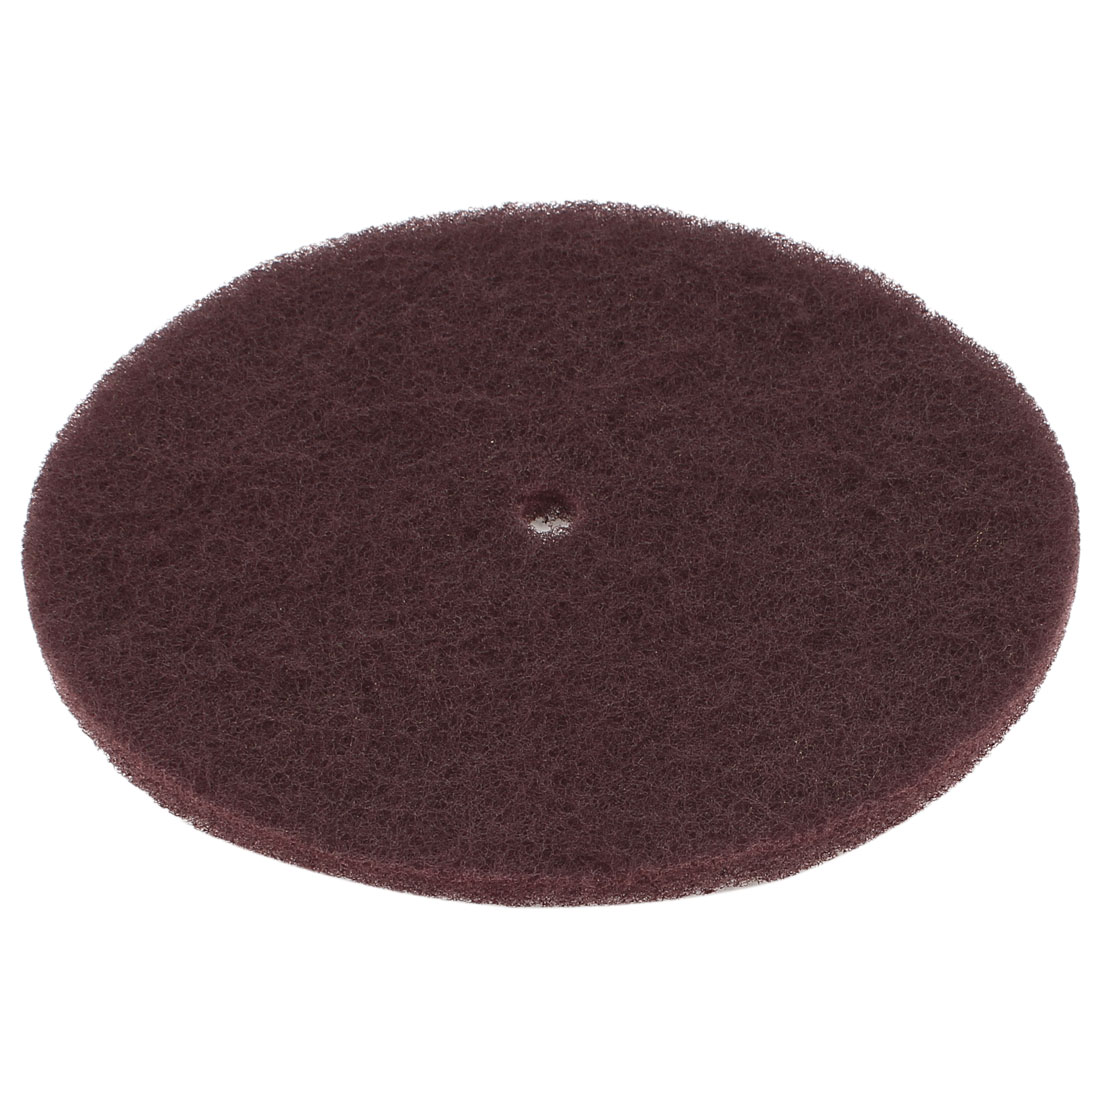 20.5cm Diameter Burgundy Felt Buffing Scrubbing Pad Disc Cleaner